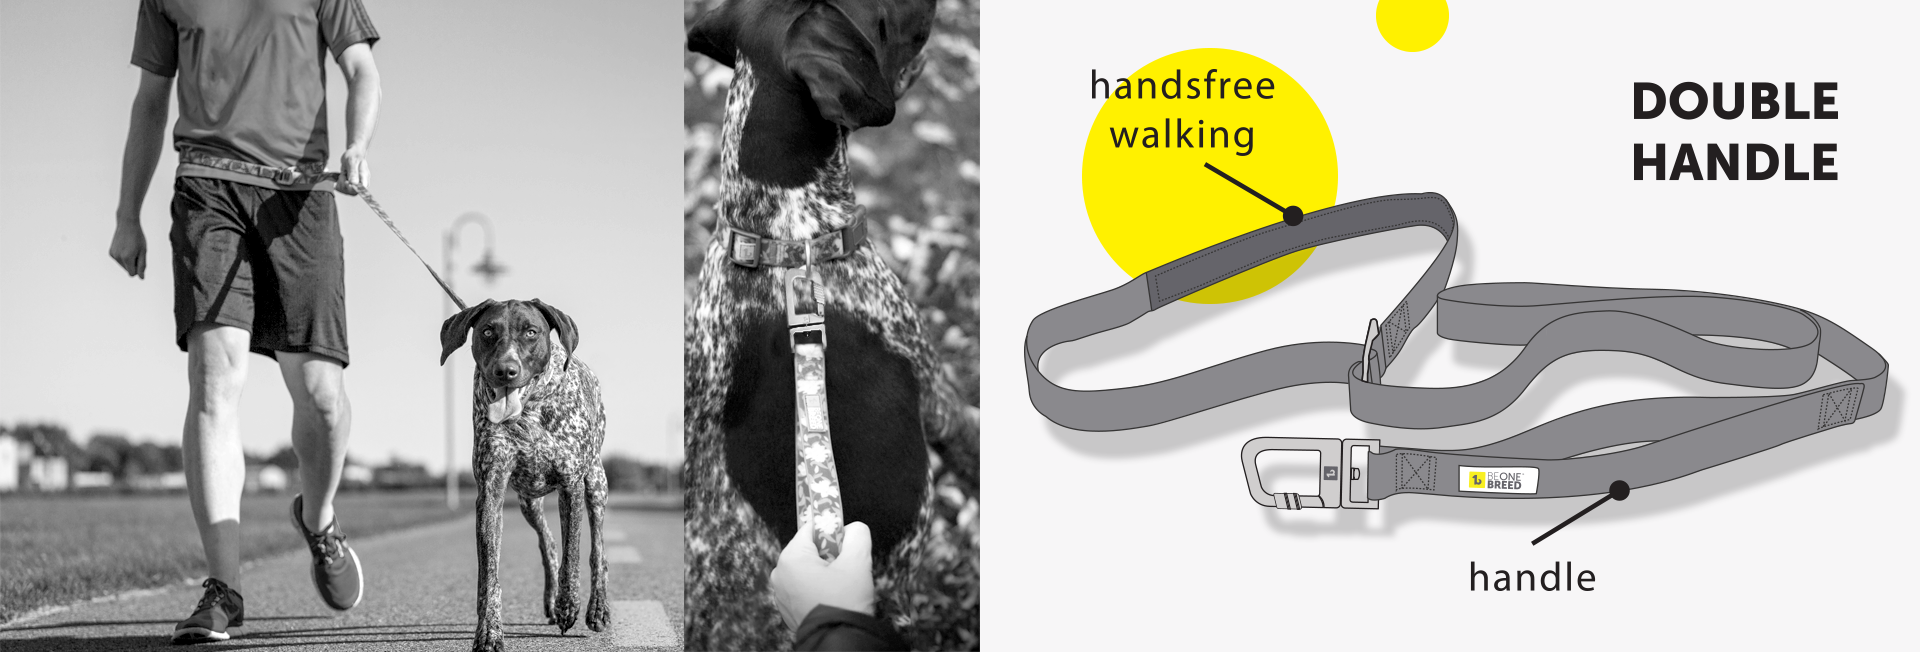 double-handle-6'-leash-for-dogs-english